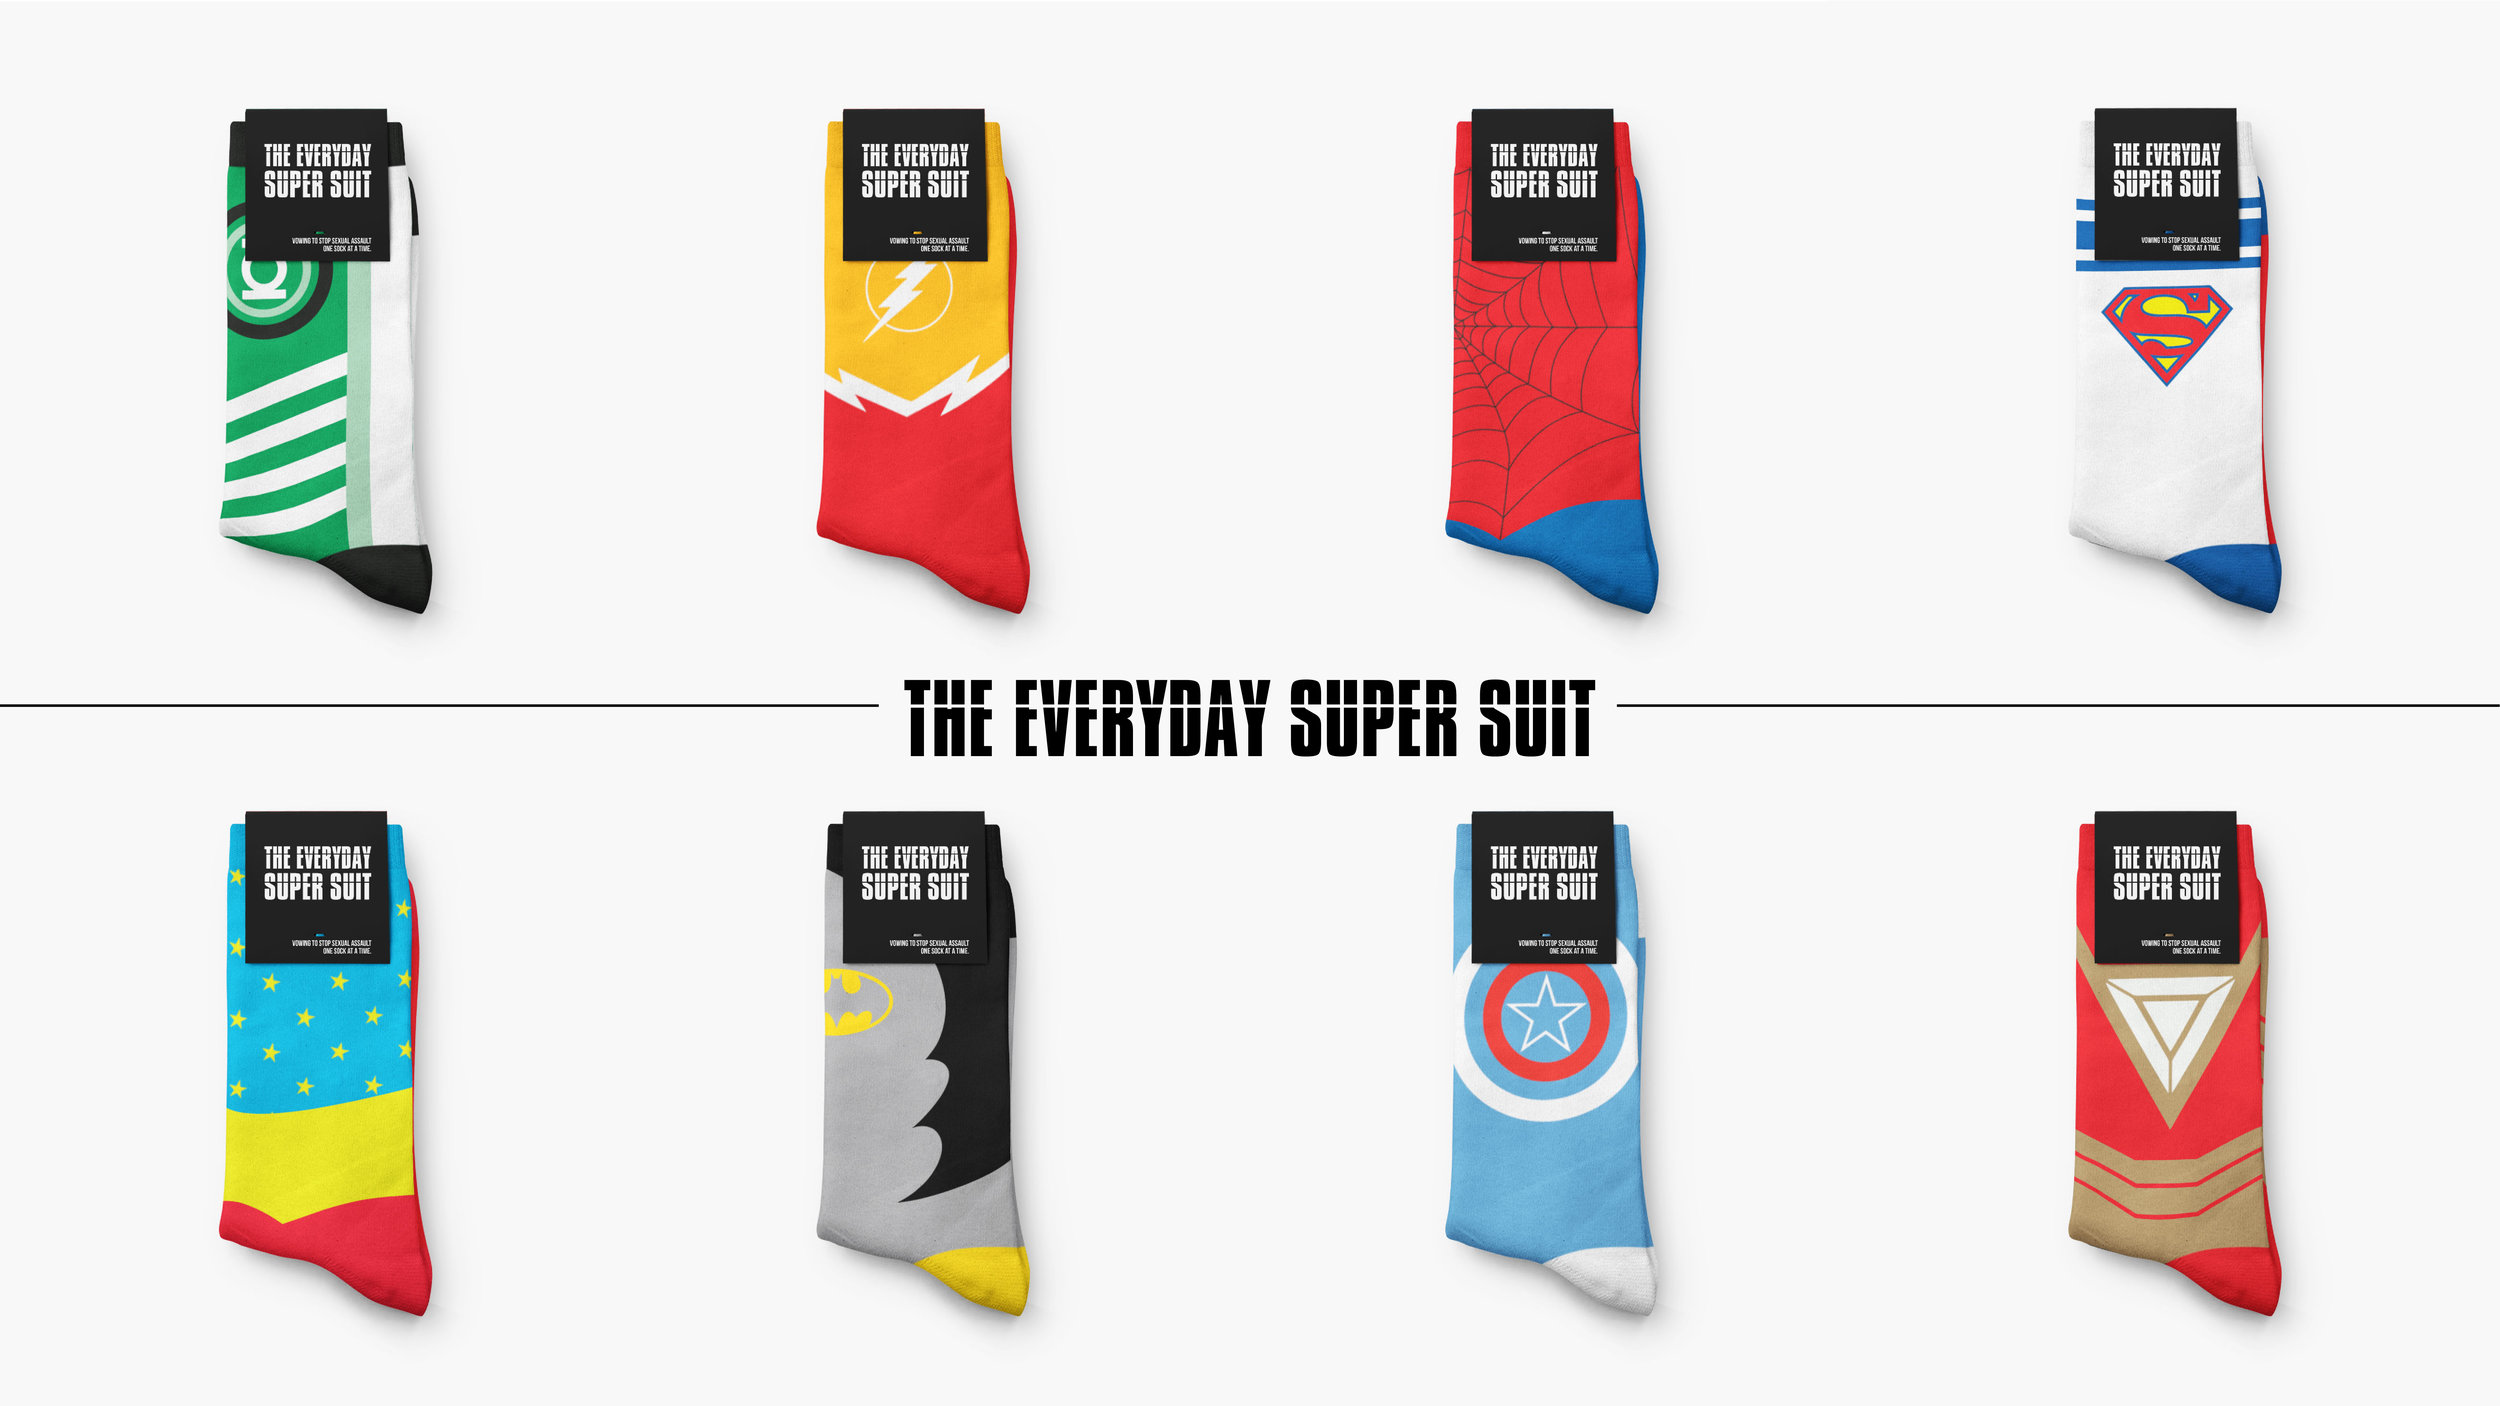 The Everyday Super Suit4.jpg